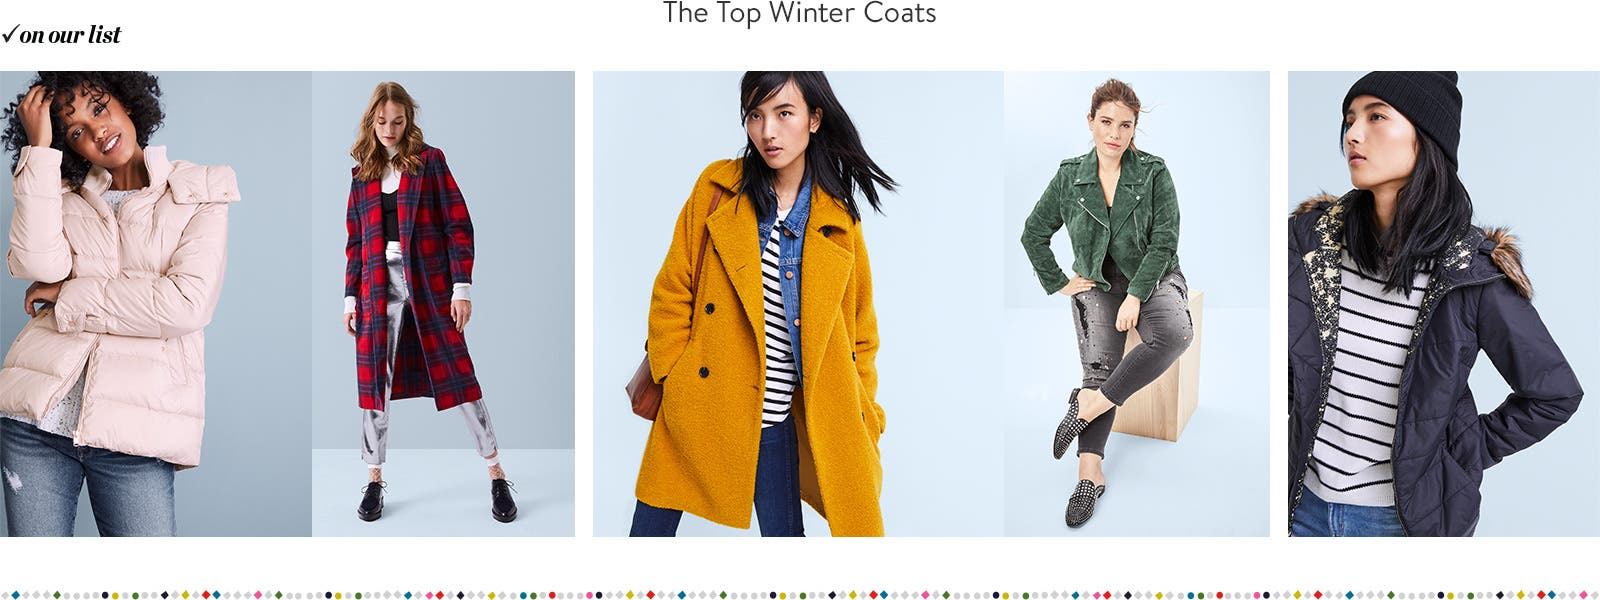 The top winter coats for women.